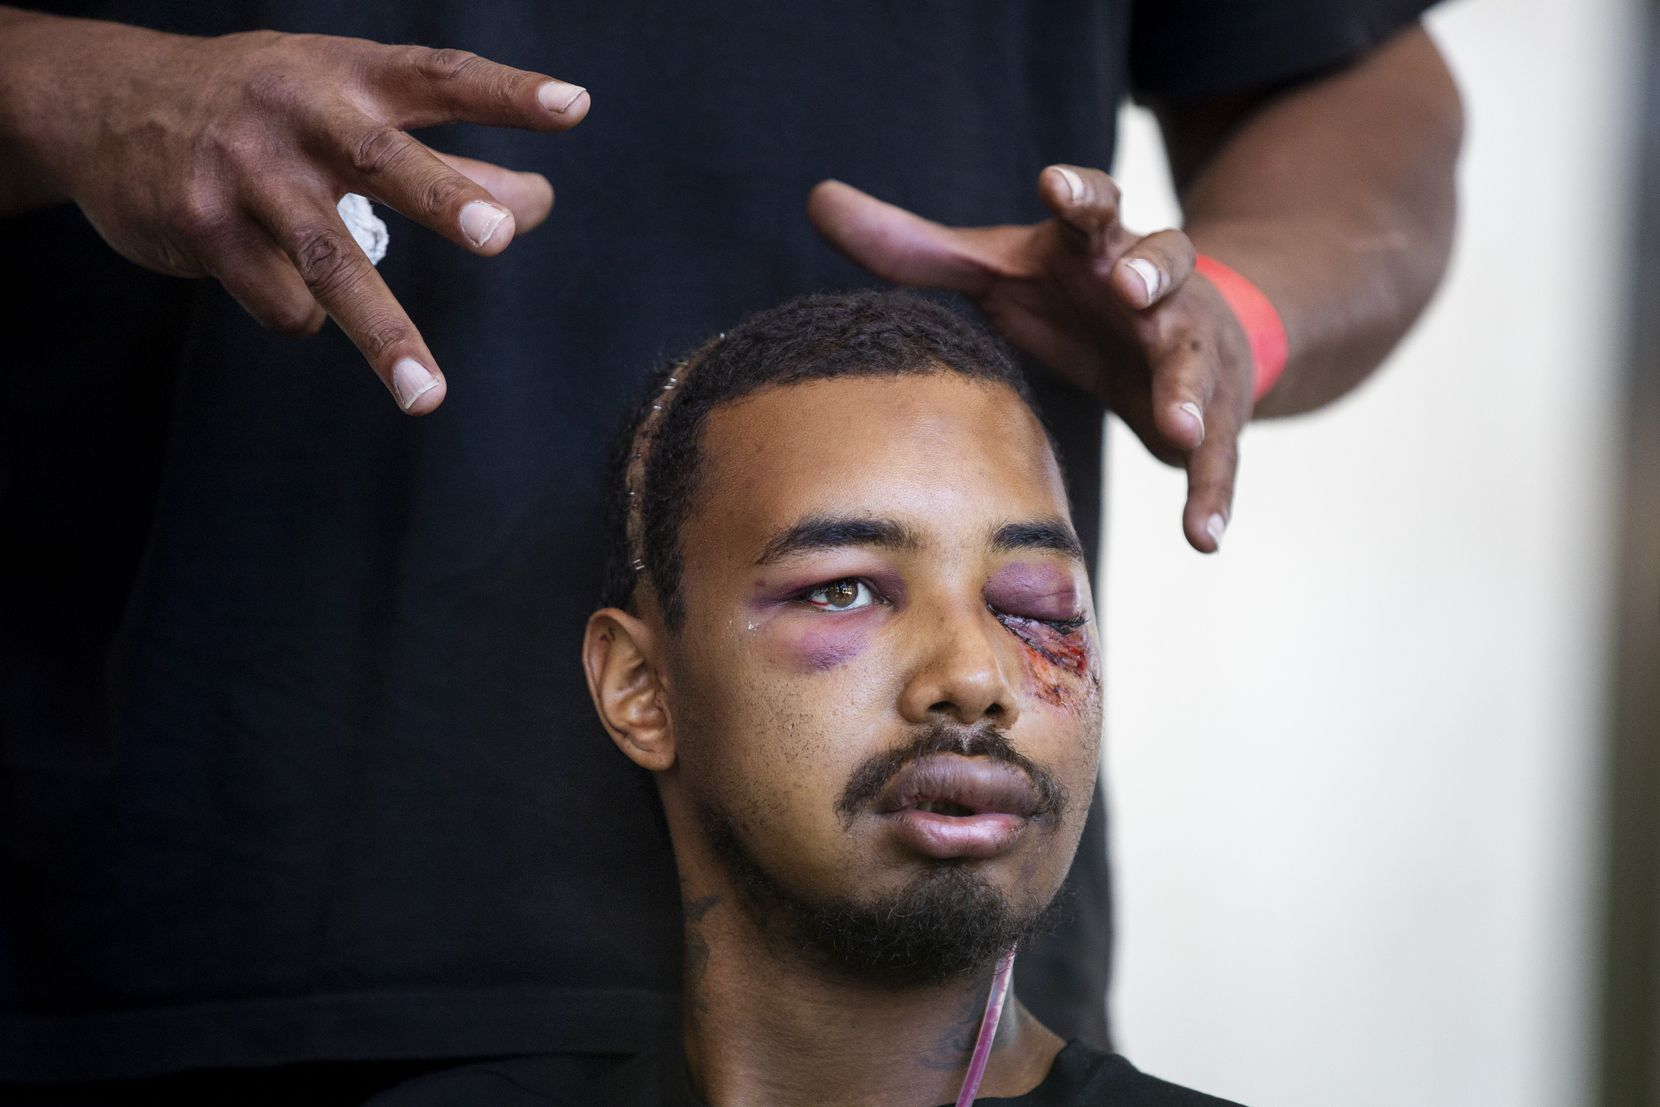 Andre Ray shows the injuries his son Brandon Saenz suffered when he was hit with less-lethal ammunition fired by Dallas police during a peaceful protest May 30. Saenz lost his left eye and seven teeth and sustained a facial fracture.